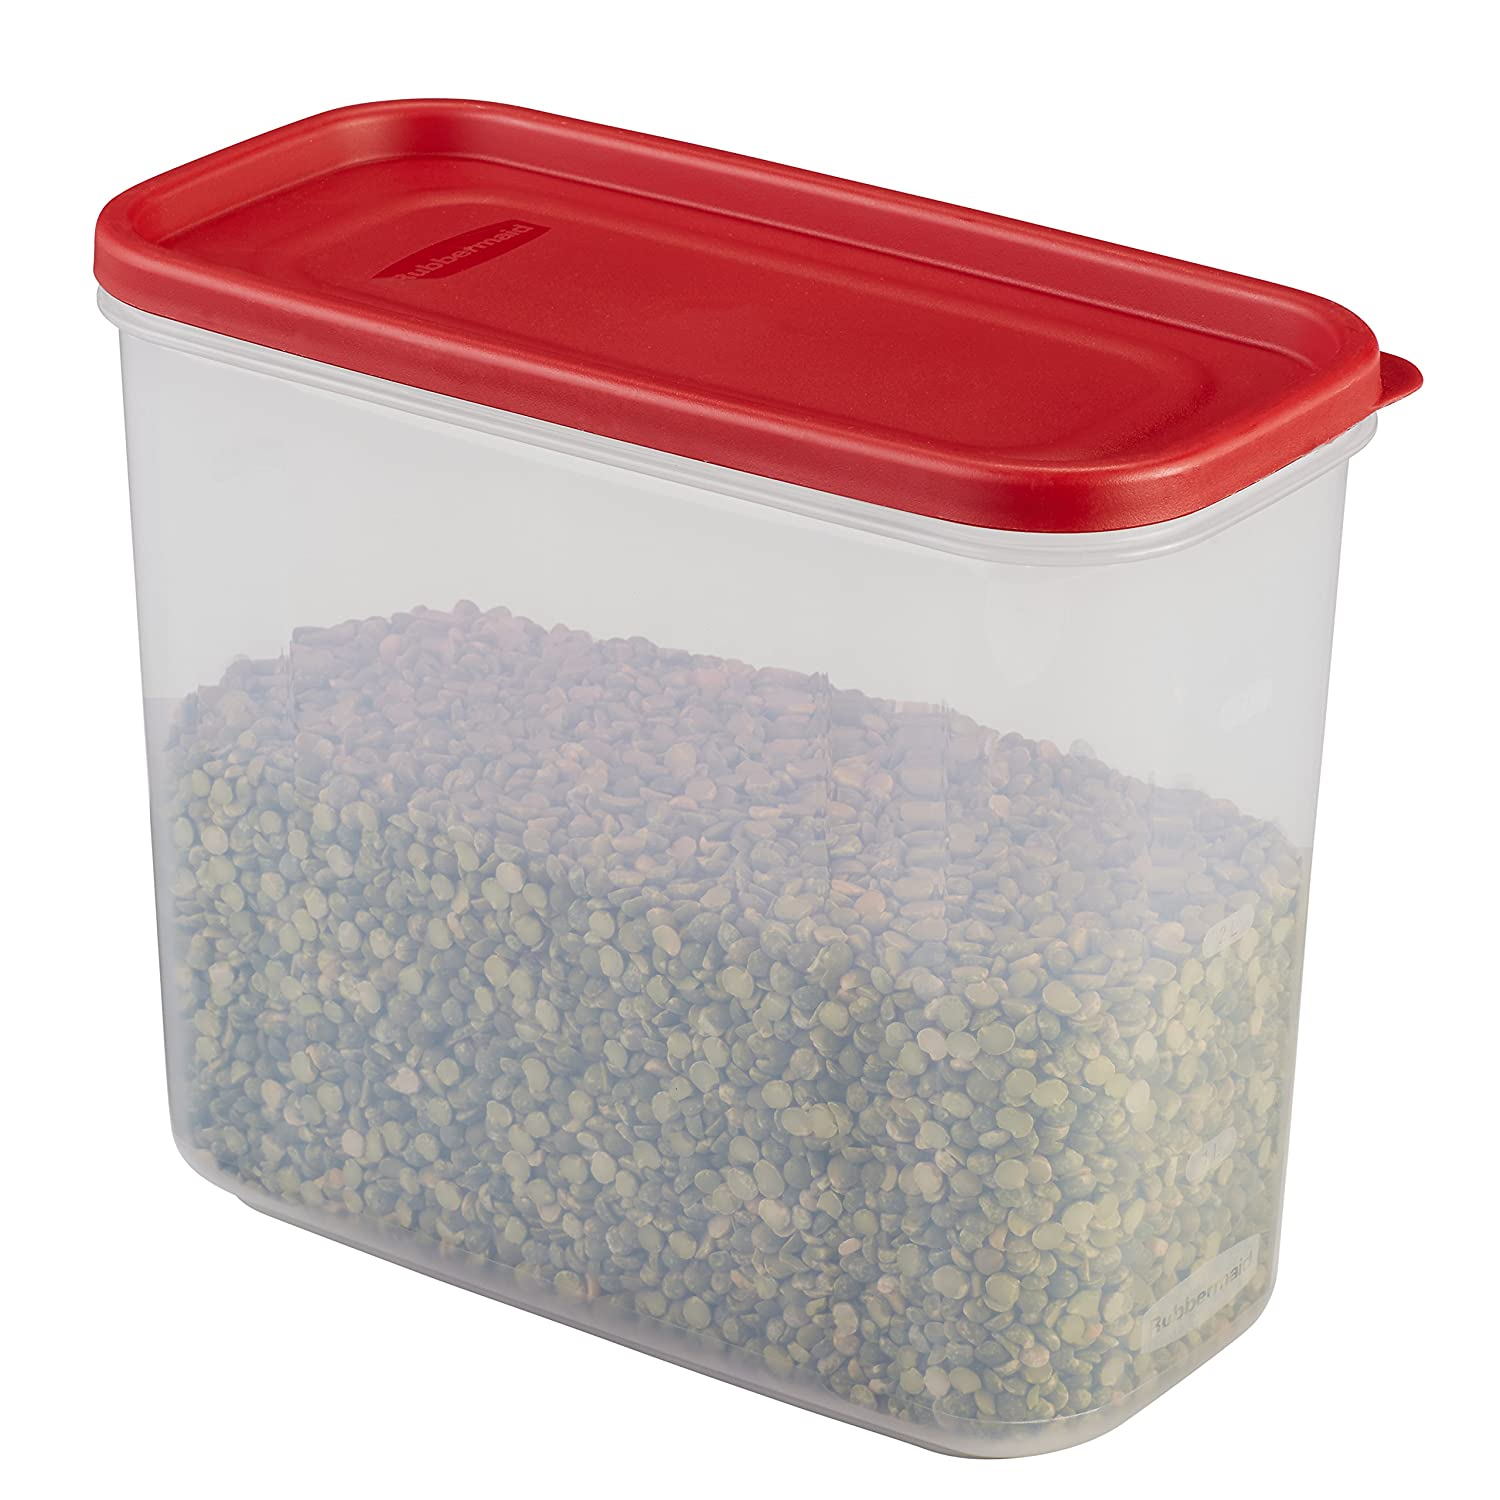 Rubbermaid Modular Food Storage Container, 16 Cup, Racer Red 1776472